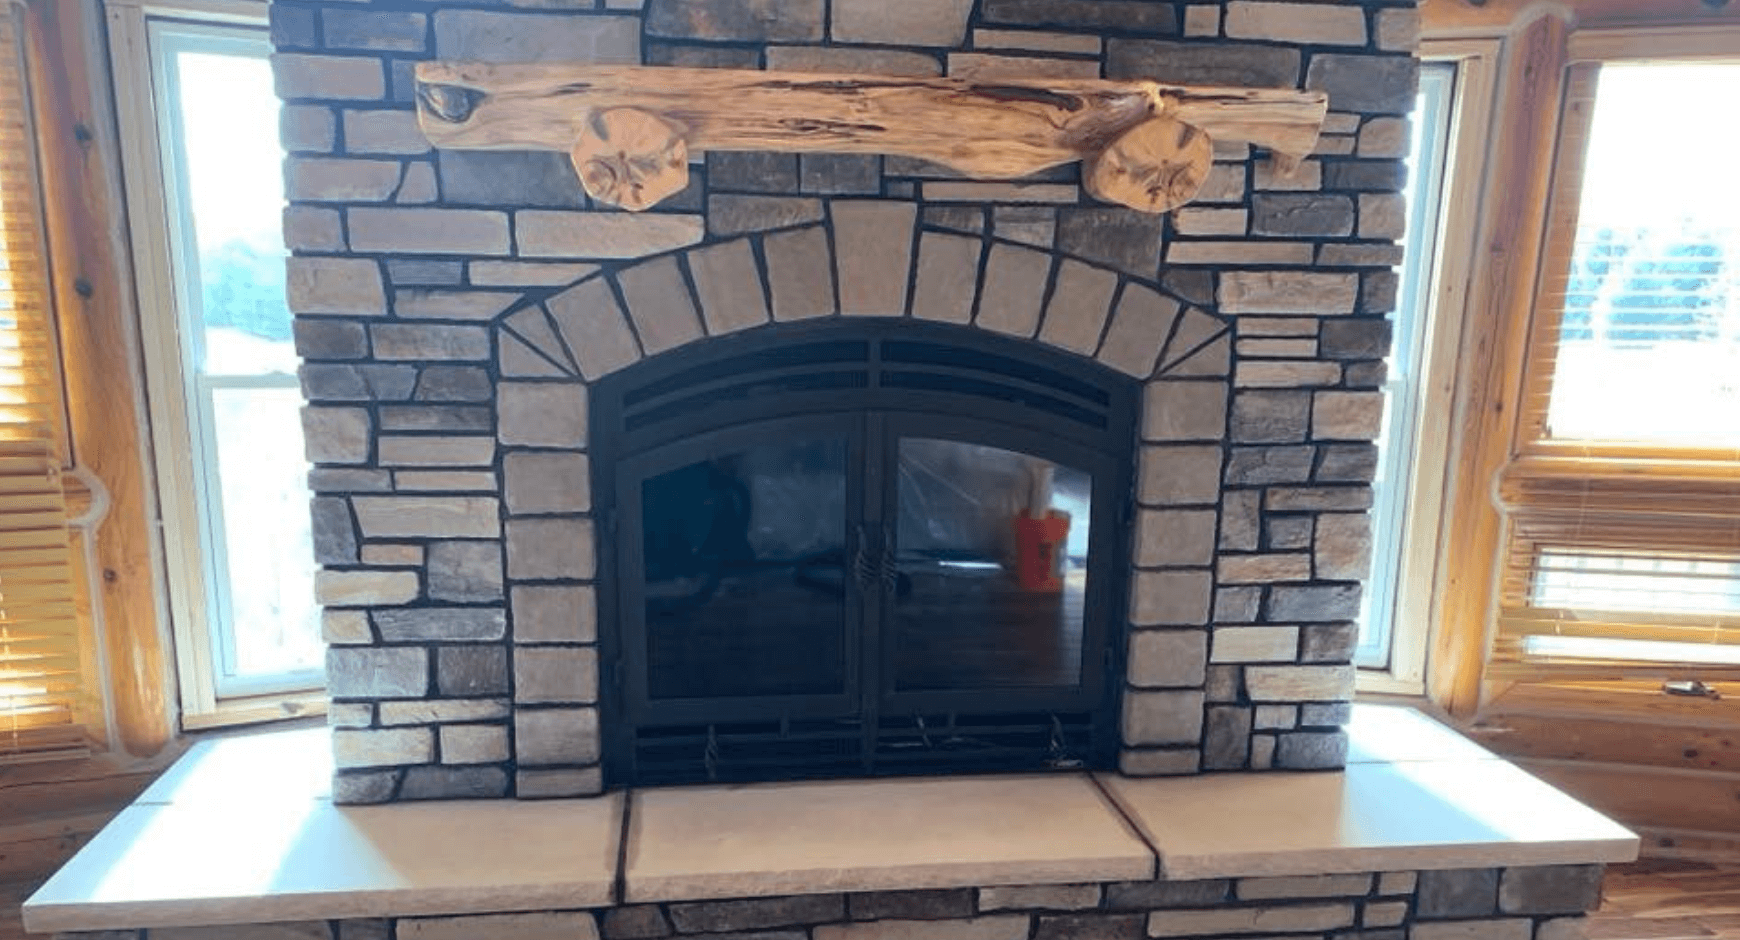 Clean stone fireplace with black doors and dark mortar